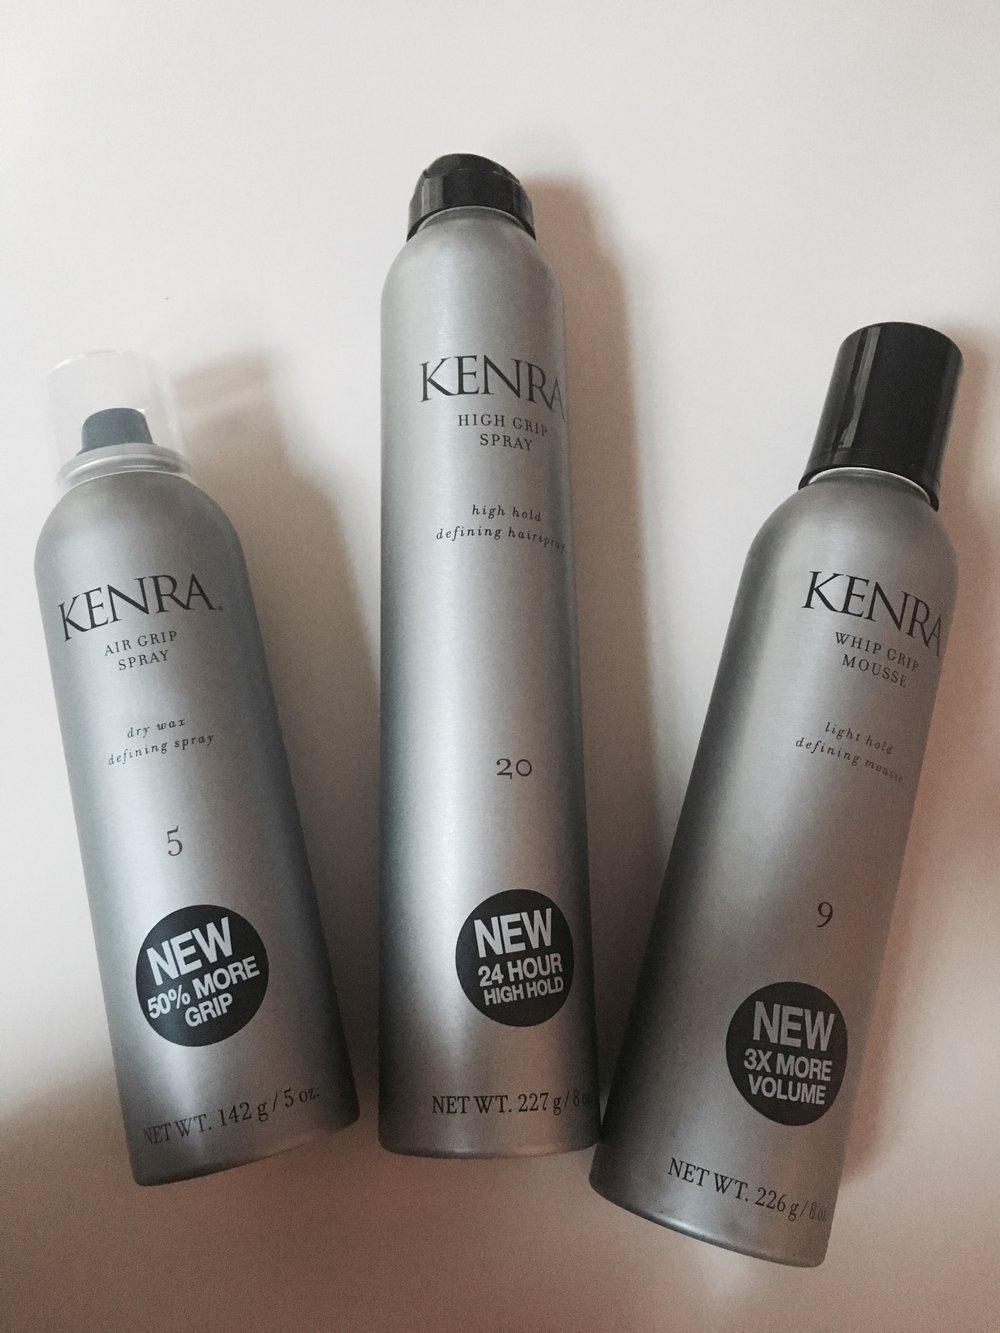 """""""This is another amazing product line from Kenra Professionals. The hold of these products is beyond phenomenal and the scent is a something you can count on to love all day long. Still telling my friends and family about this line and highly recommending it!""""   Their Story We are a purely professional brand dedicated to understanding and serving today's stylists. Our passion is developing best-in-class innovations, delivering superior and reliable results. Kenra Professional strives to elevate the stylists' artistry and craft. Three unique brands, Kenra, Kenra Platinum, and Kenra Color, are each driven by the daily needs of stylists. A complete range of high-performance products combined with straightforward and accessible education gives stylists the confidence to address every client's need.   About Henry Meyers Henry Meyers came to America with his Dutch parents in 1920 as a wide-eyed, adventuresome 10- year-old. They came to scape Nazi occupation of their homeland, and to pursue freedom and prosperity. Henry grew up in the Grand Rapids, Michigan area, quickly learning English, and getting very involved in school, music and sports... anything that involved people. But even as a teenager, he was in his uncle's barber shop cutting hair and just cutting up with everyone who entered the shop. It didn't take Henry long to buy his uncle's barber shop, and of course you know the first thing he did was raise his prices because he was worth it. If the barber down the street was worth a nickel, certainly he was worth a dime. It became very clear that he could and would engage every person in his chair in a wandering verbal exchange to delight everyone within earshot. Whenever the barber supply salesman came in to Henry's shop, Henry couldn't wait to see and to sell the newest, finest item to all his customers. He knew they would love it, and there's little he enjoyed more than selling (even if it were only his point of view he was proffering) That skill was not lost on th"""